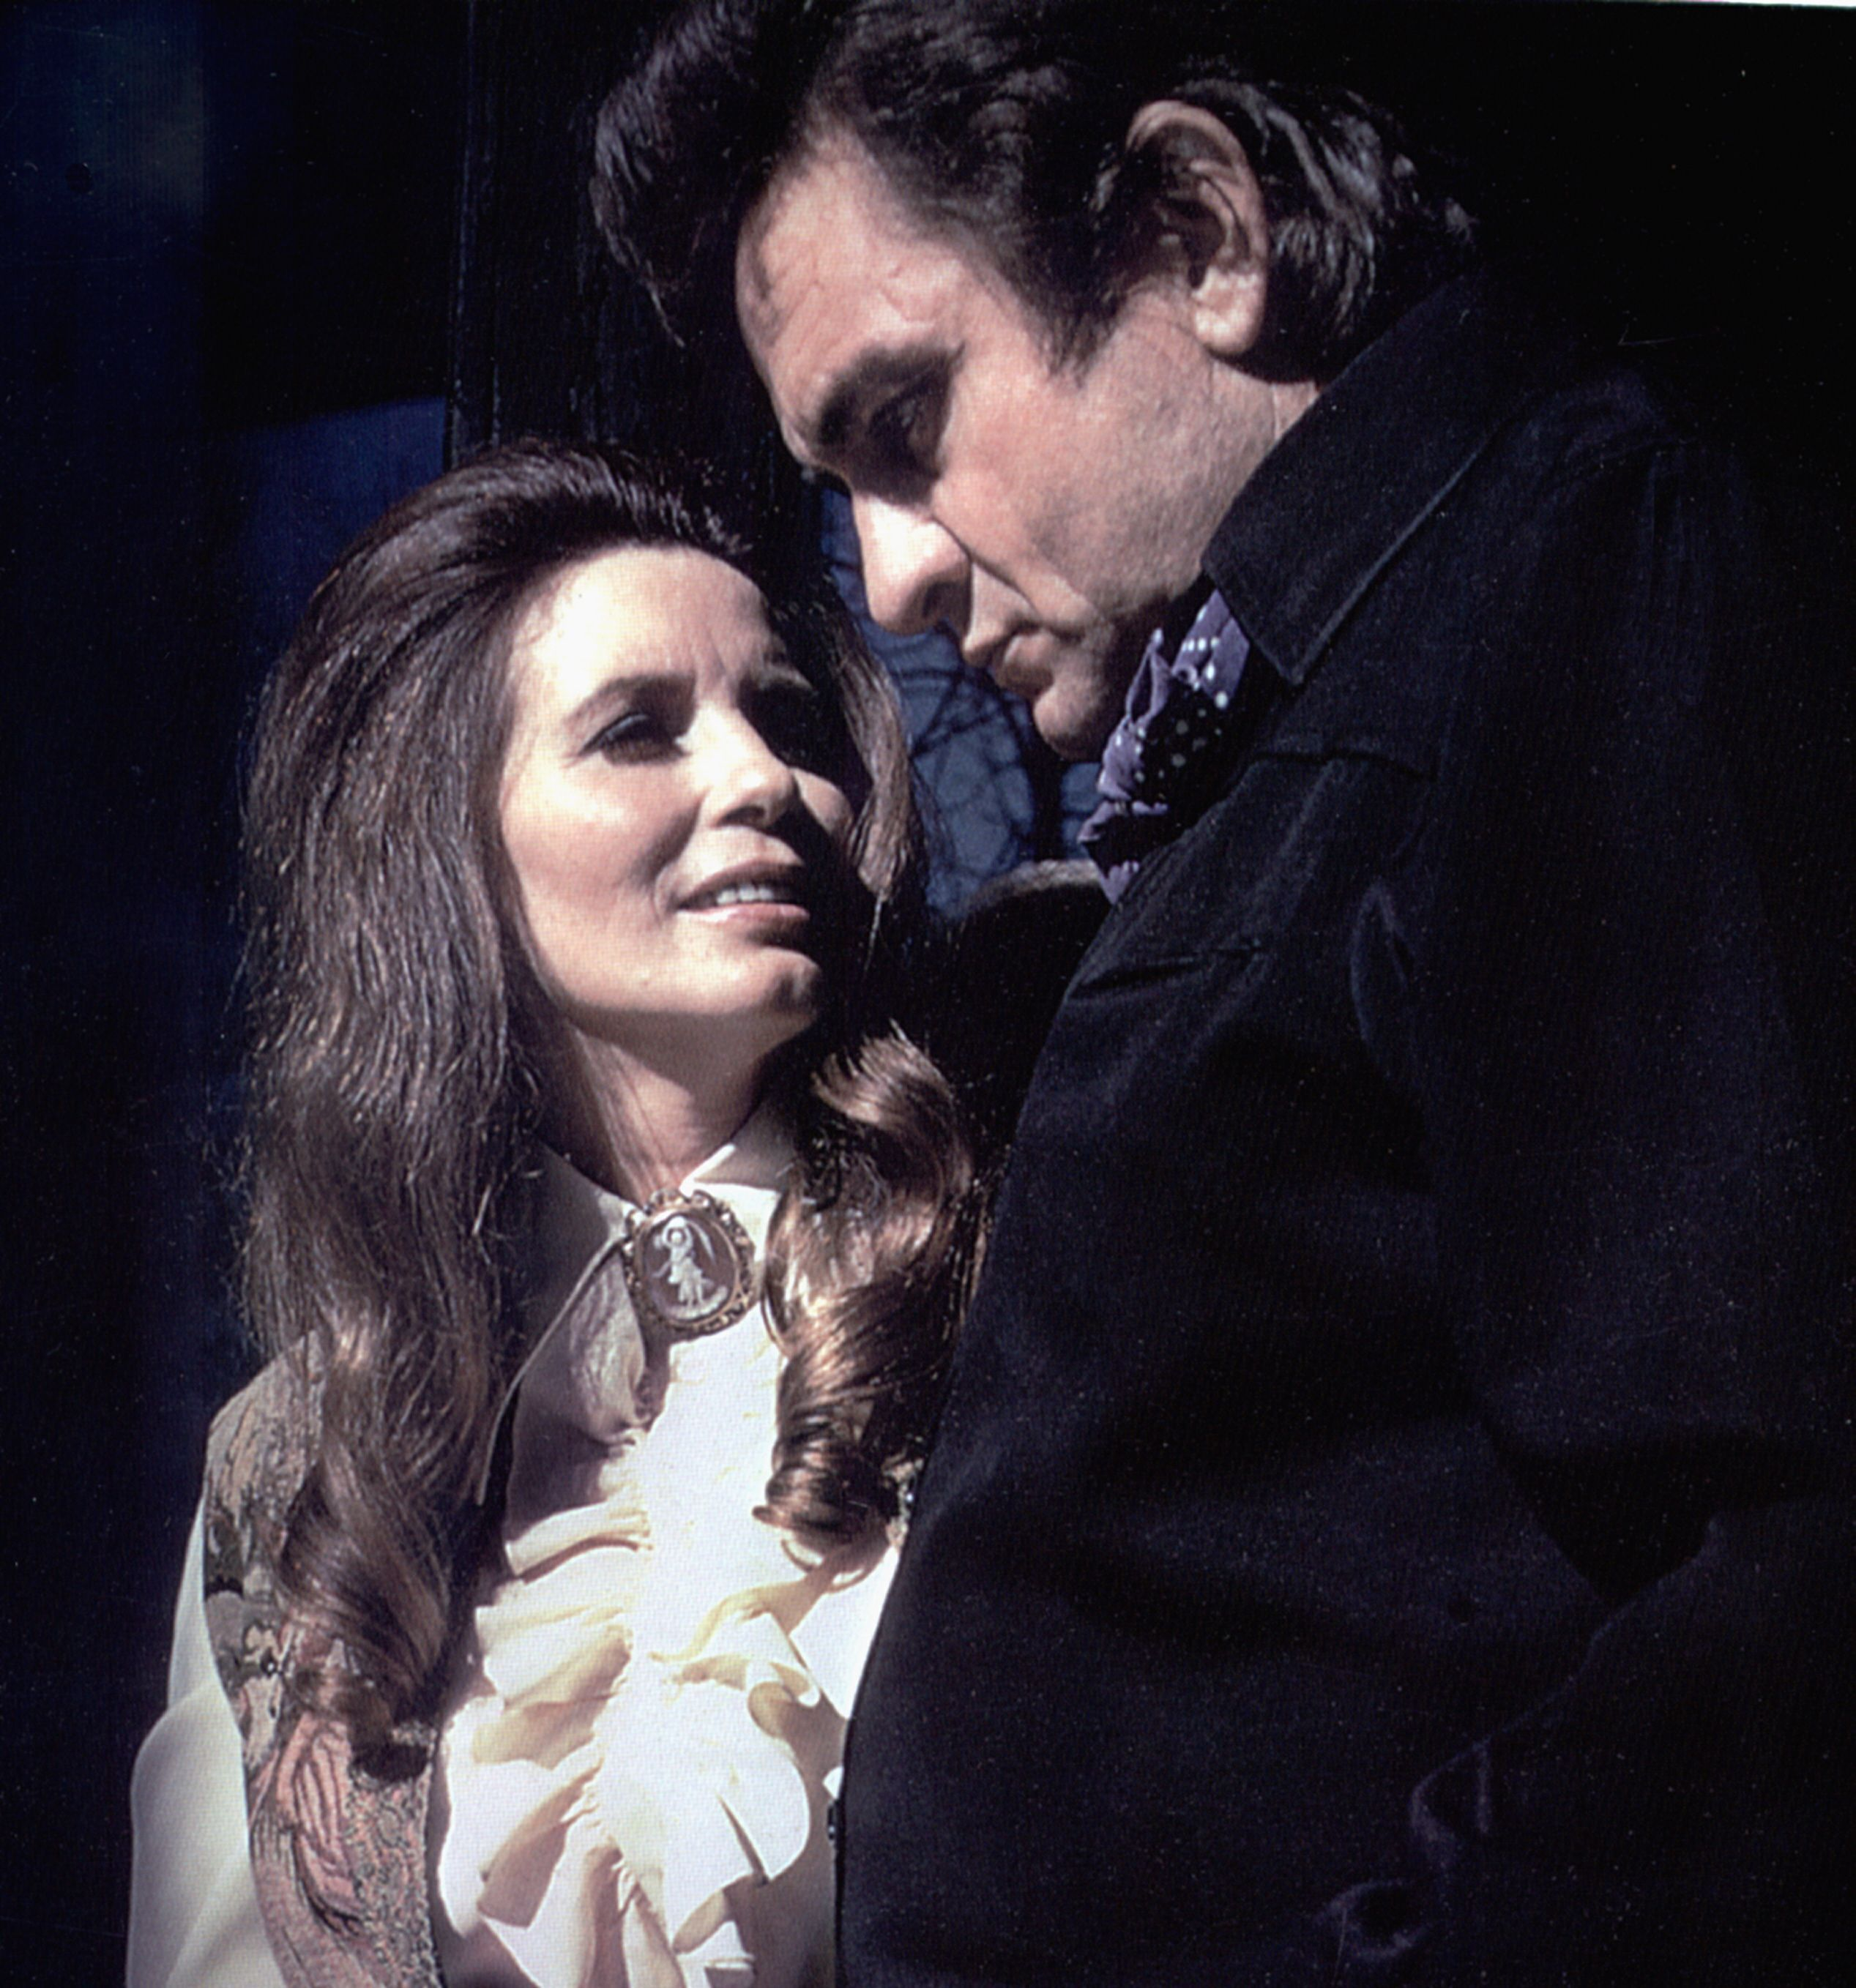 Johnny Cash June Carter Proposal - Pictures of Johnny Cash and June